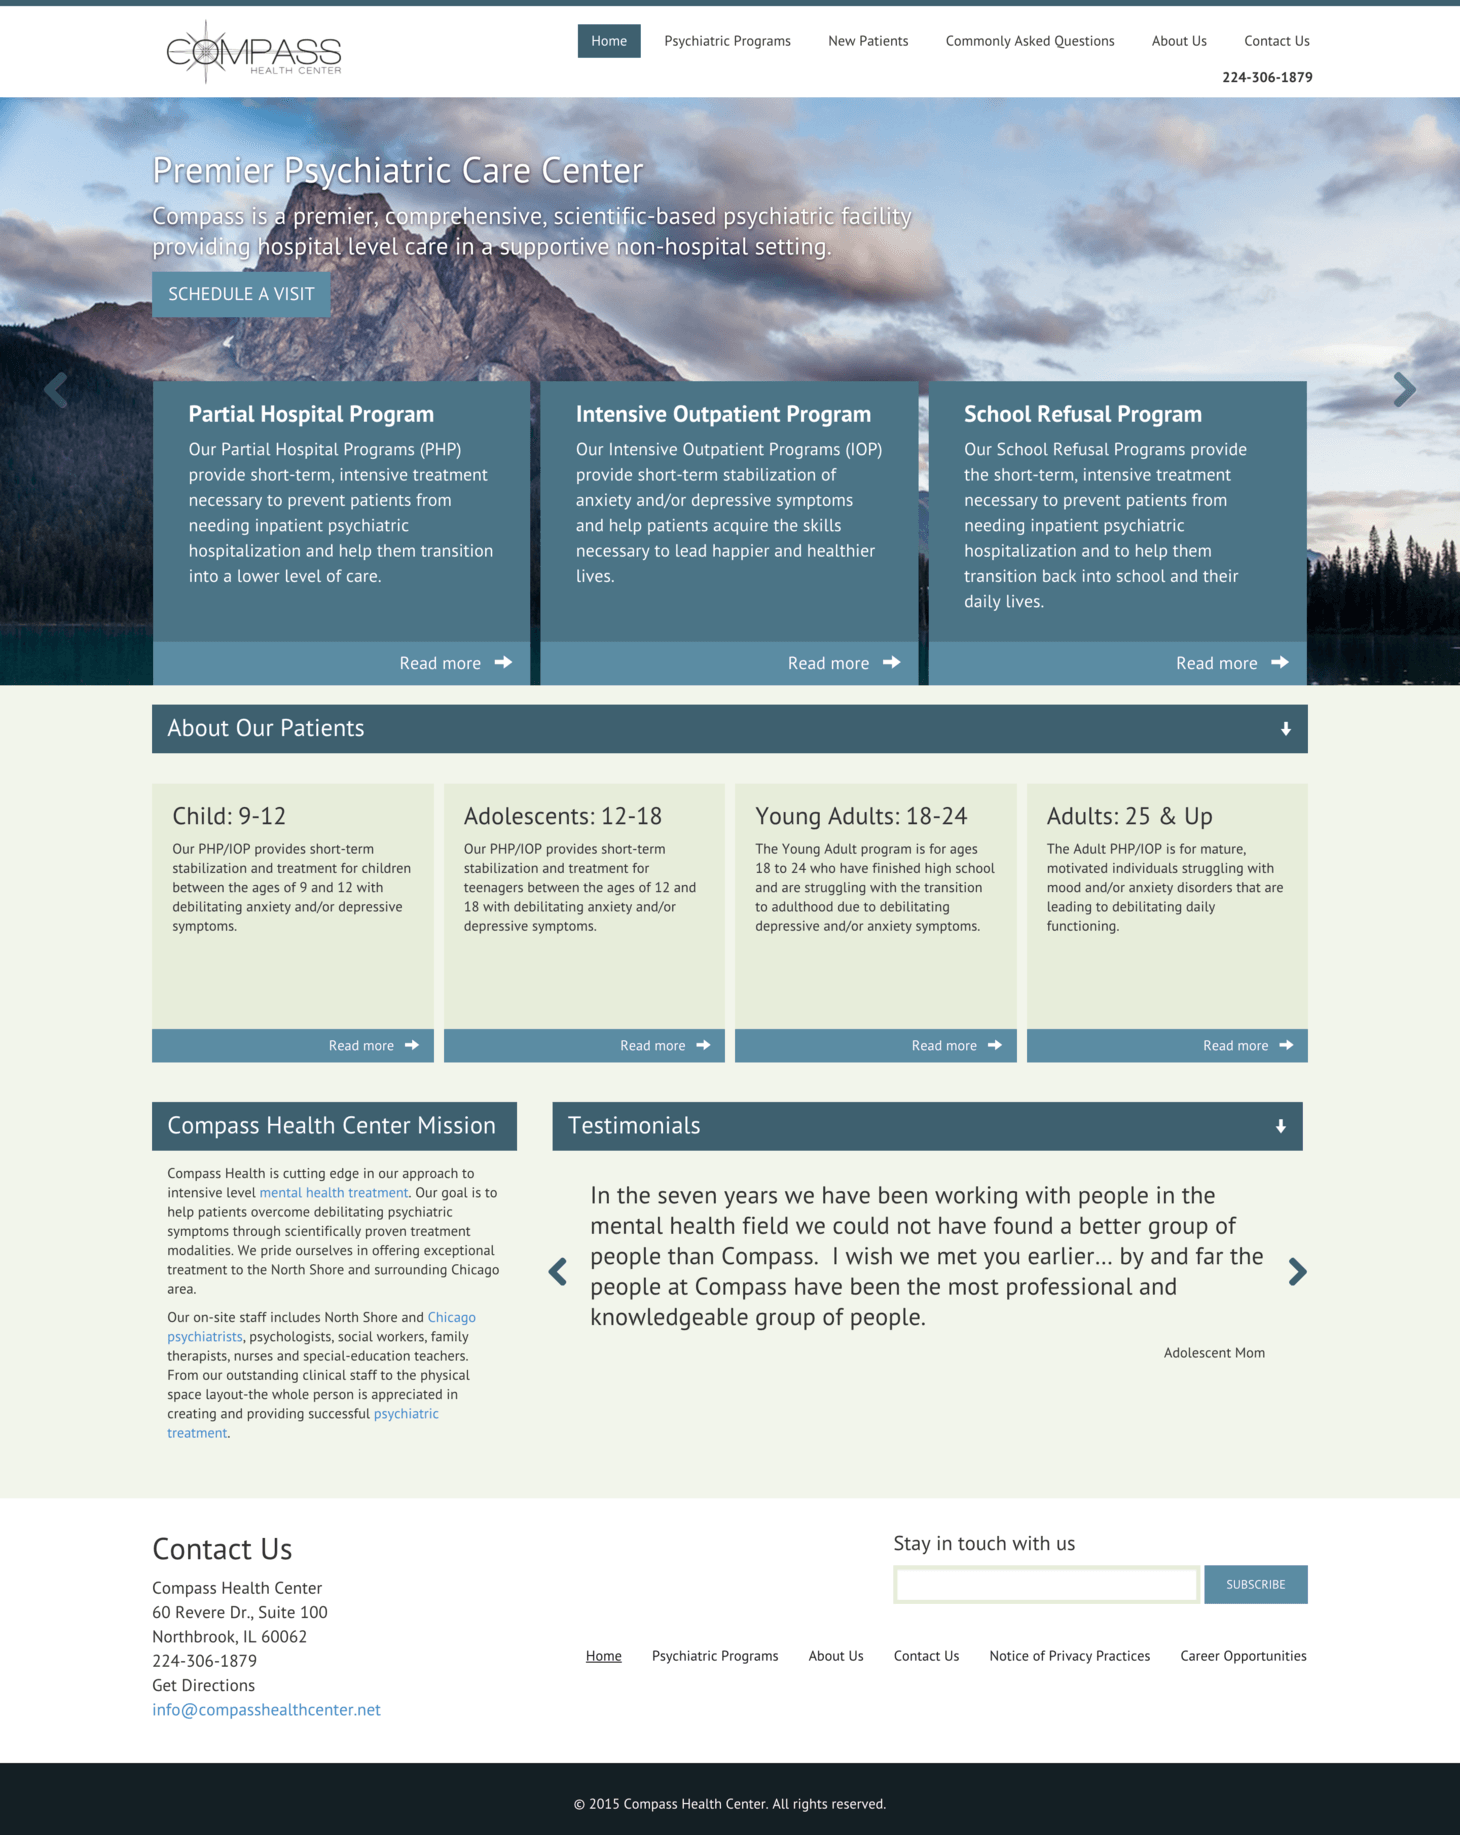 Desktop view of Compass Health Center website.